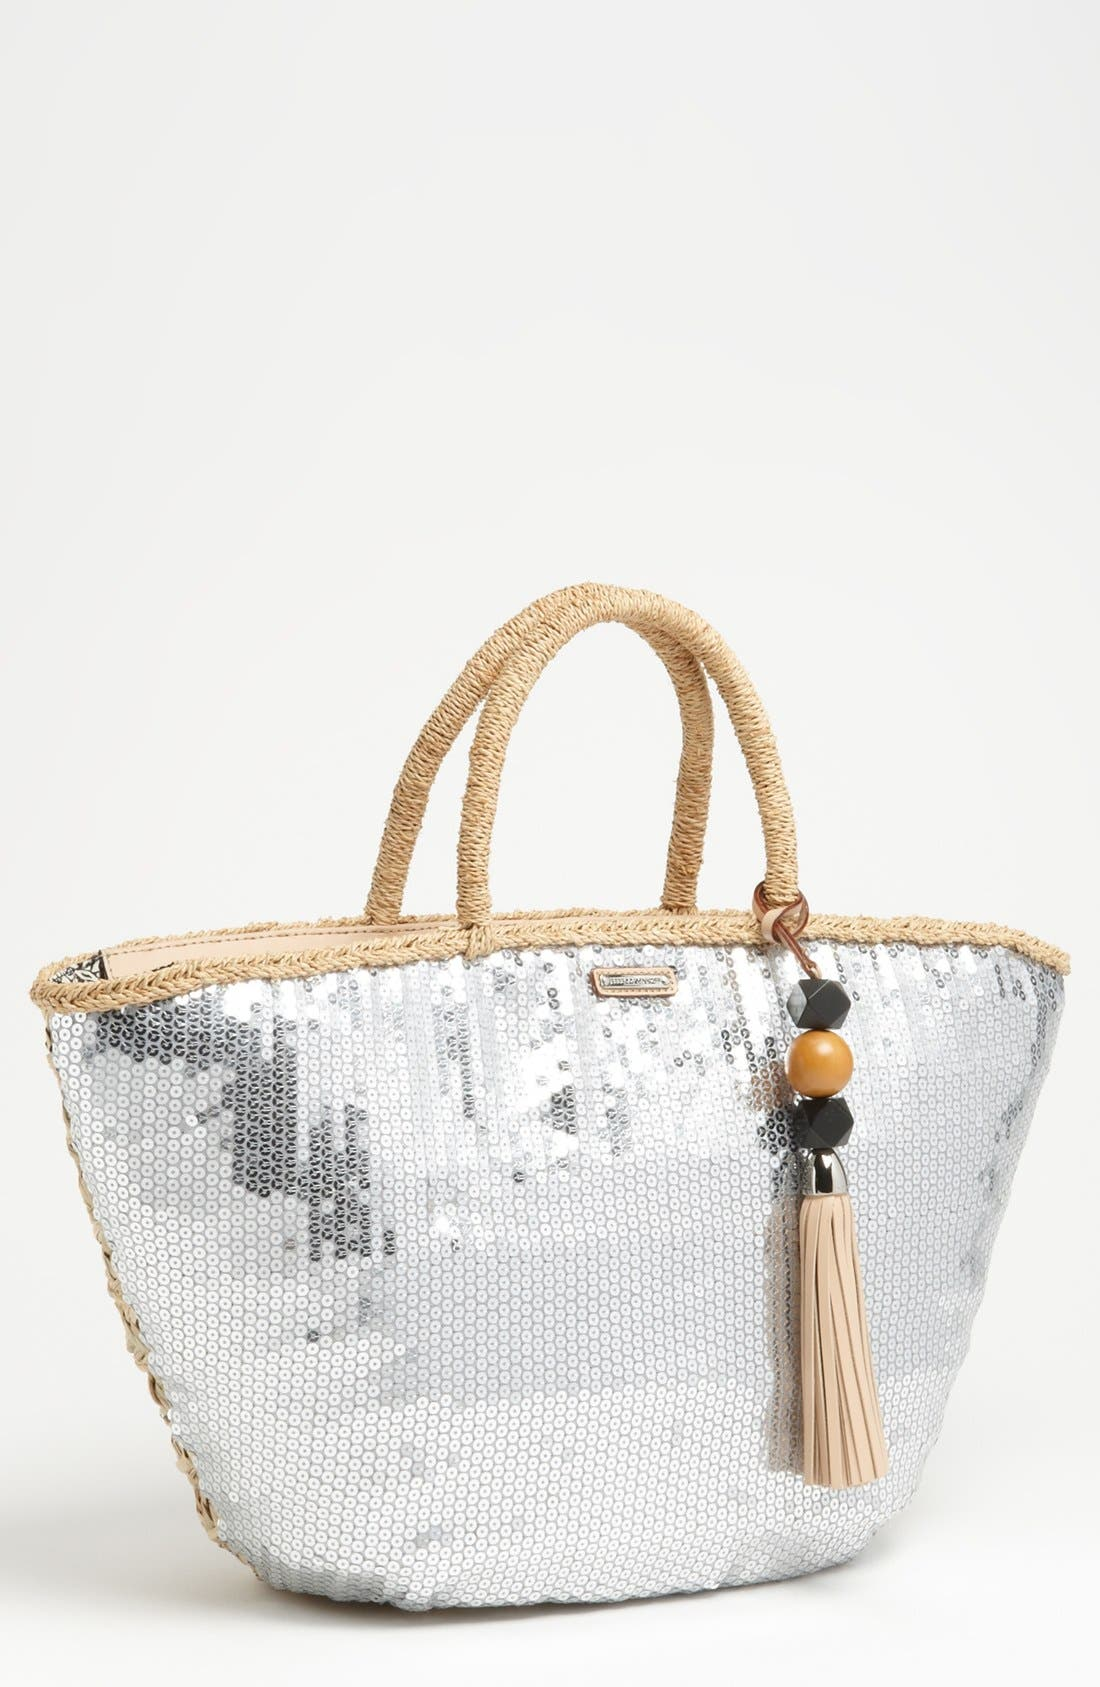 Alternate Image 1 Selected - Rebecca Minkoff 'Carter' Tote